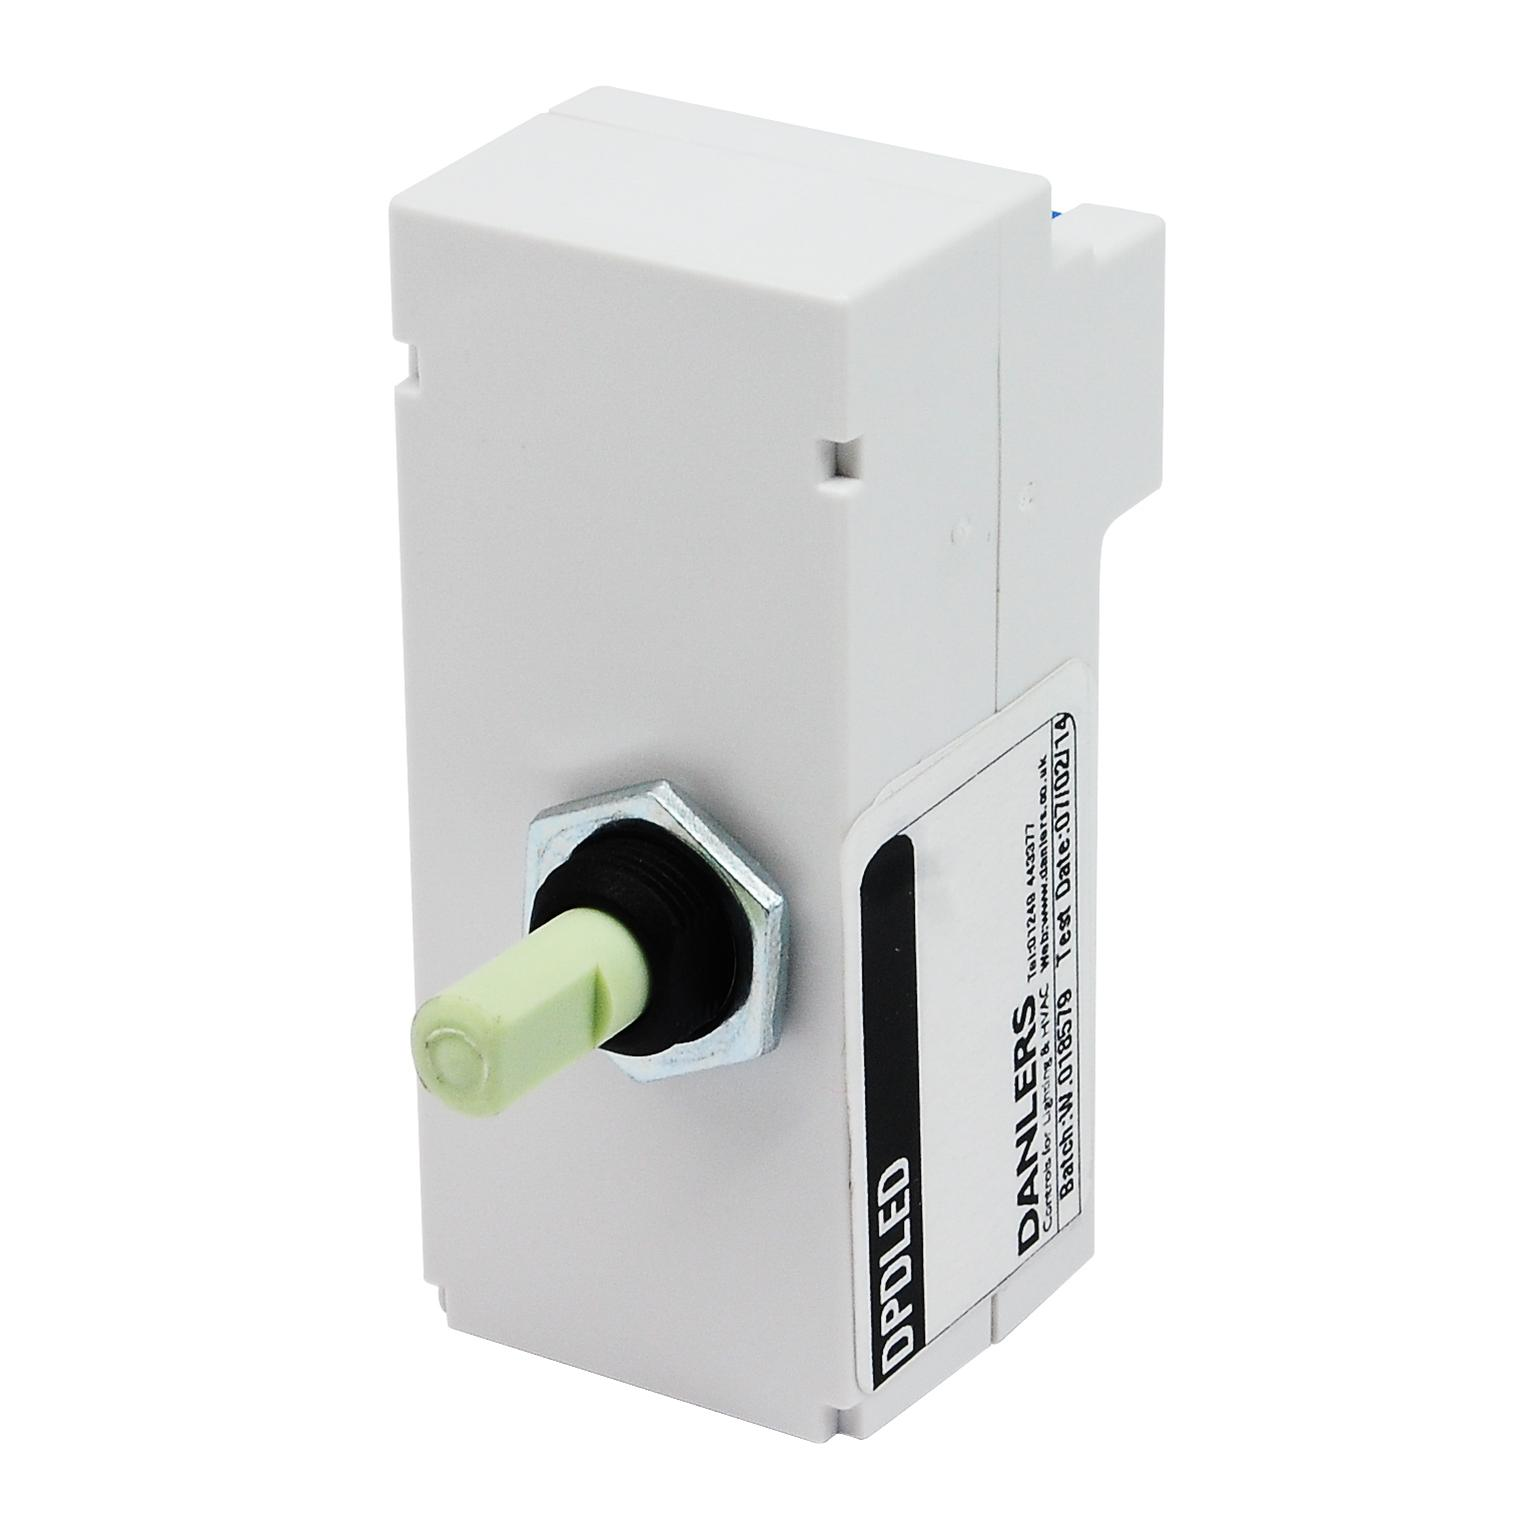 Rotary And Push LED Dimmer Module White 250W Wireless Radio - 2 Way Dimmer Switch Module